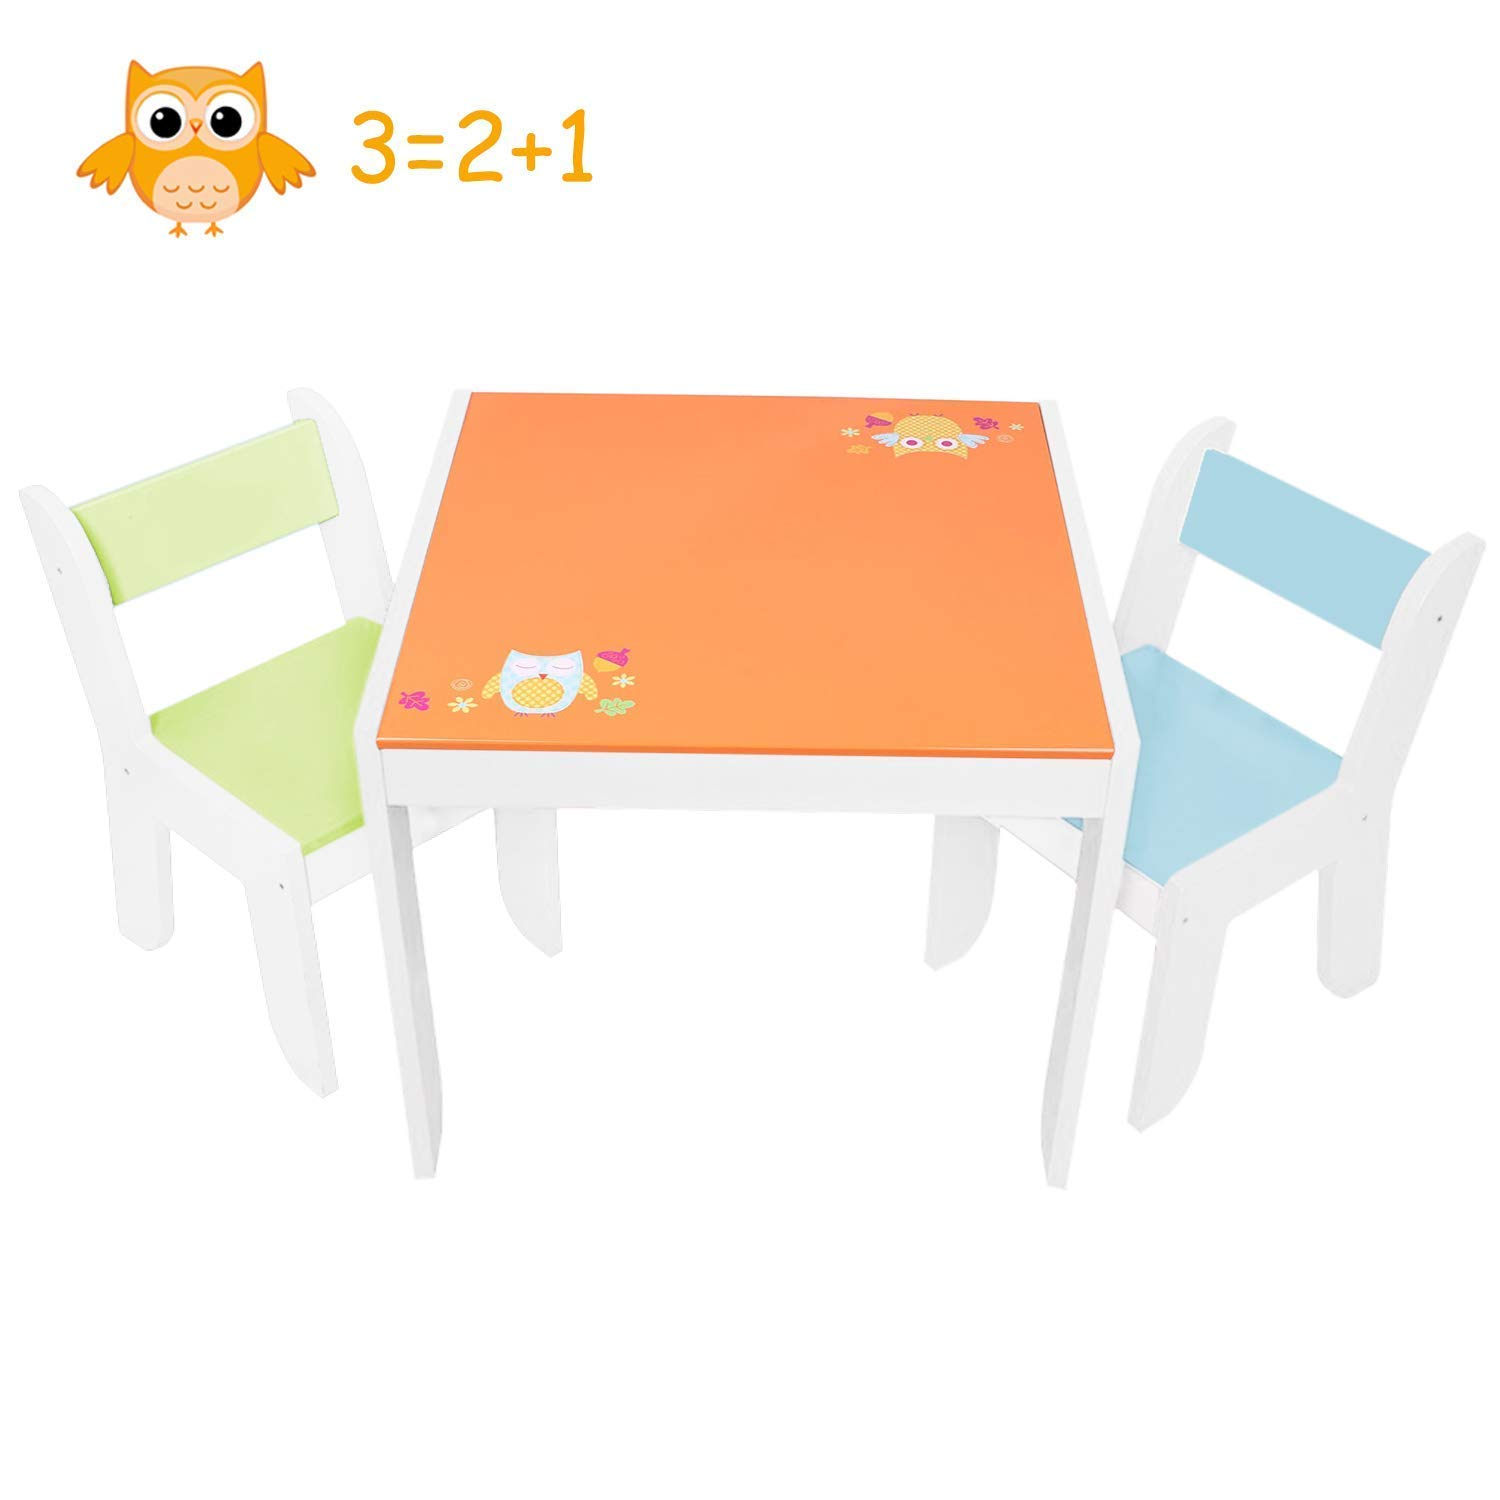 Excellent Labebe Wooden Activity Table Chair Set Orange Owl Toddler Table For 1 5 Years Baby Table Set Toddler Play Table Baby Activity Table Kid Table Home Interior And Landscaping Oversignezvosmurscom